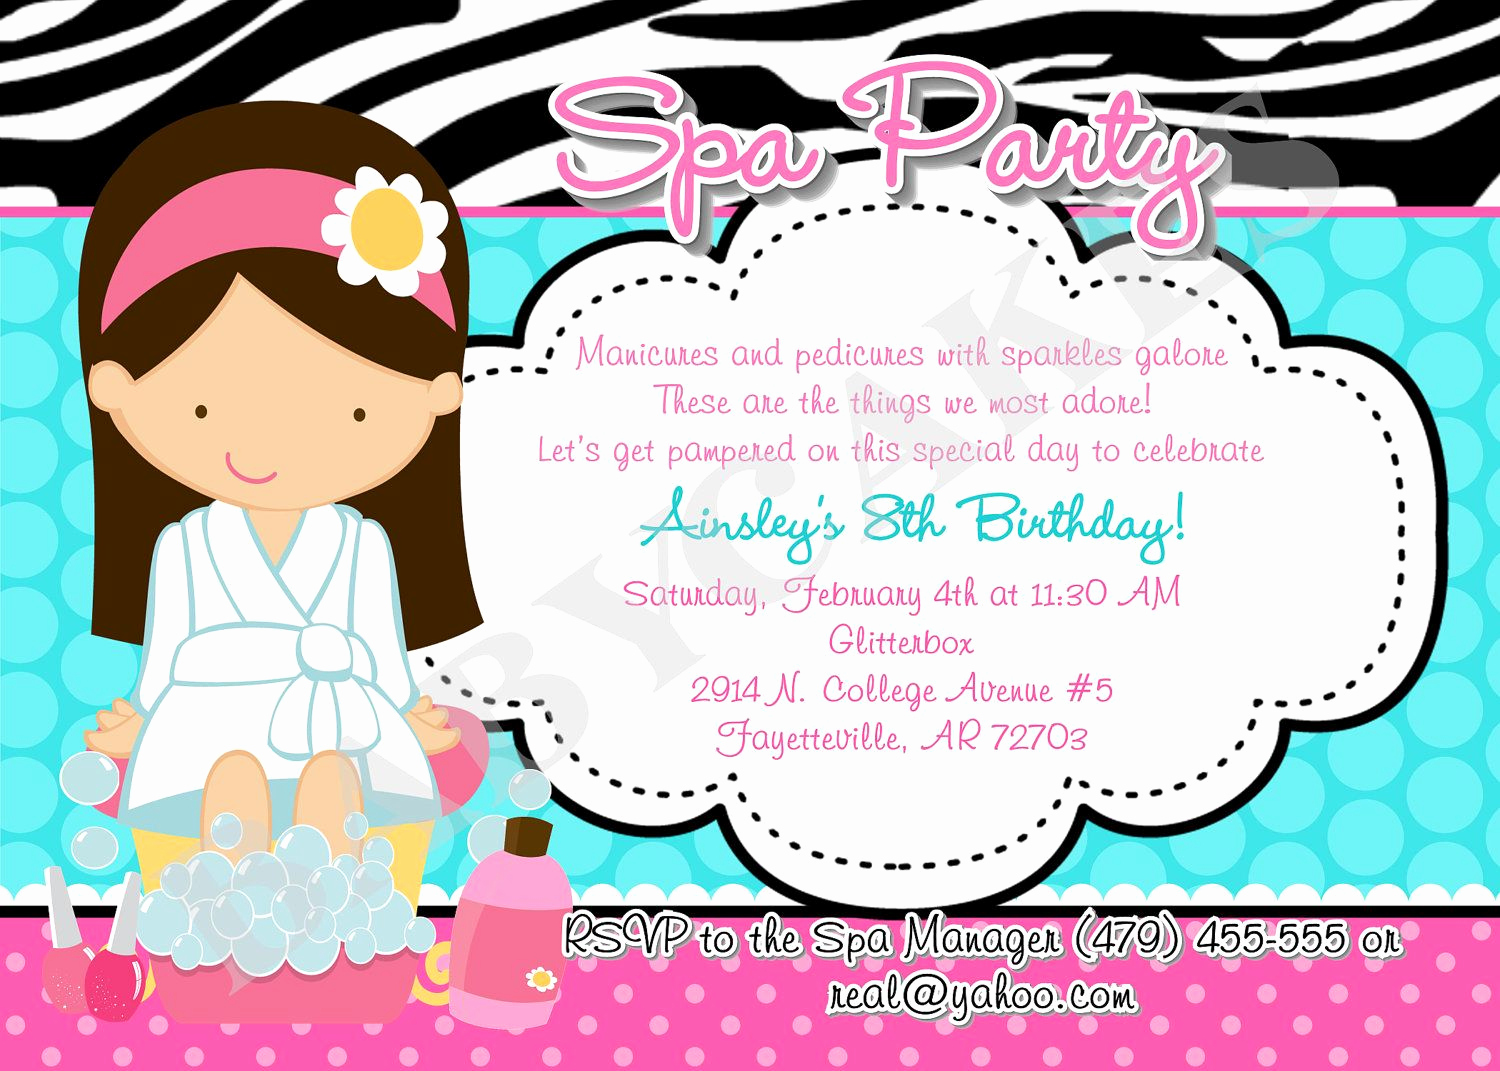 Spa Party Invitation Template Free Elegant Spa Party Invitation Birthday Diy Print Your Own